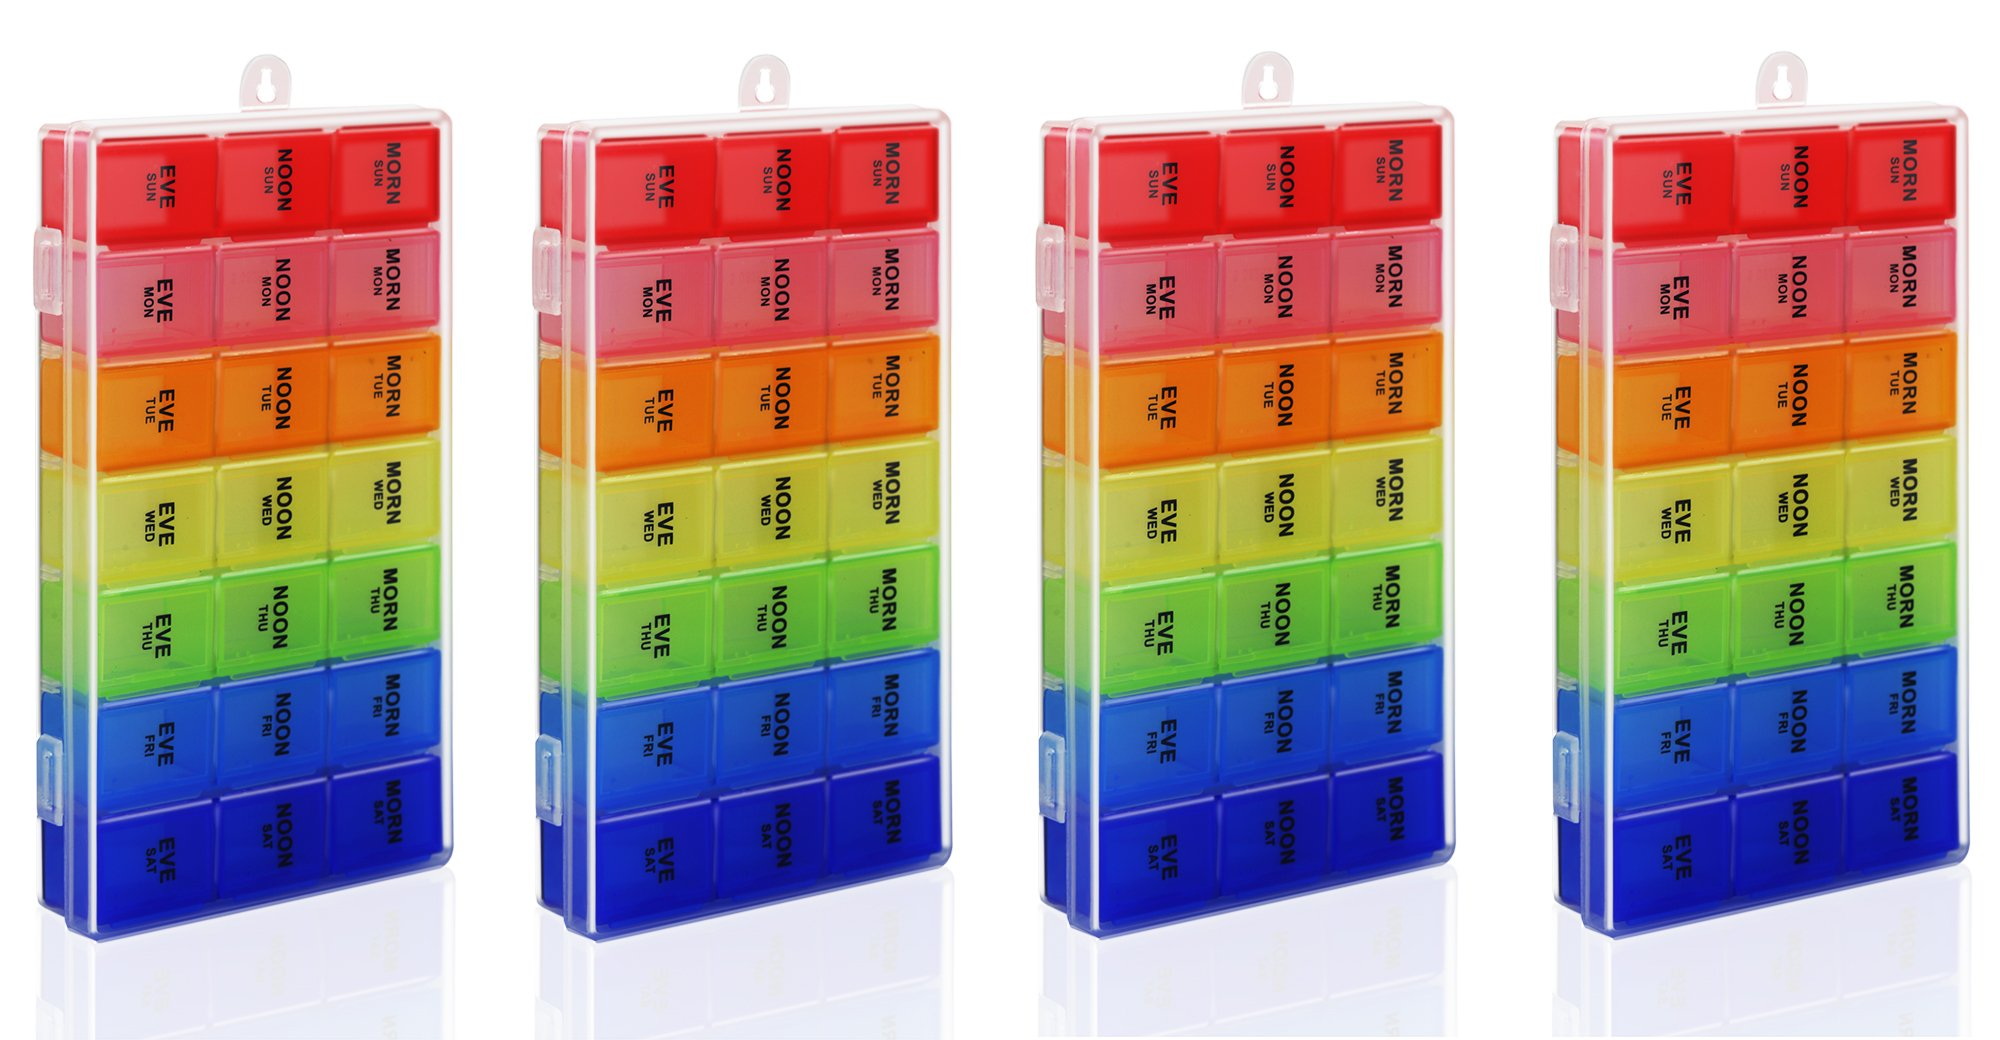 Rainbow Weekly Pill Organizer with Snap Lids| 7-day AM/PM | Detachable Compartments for Pills, Vitamin. (Rainbow 4pcs) by Inspiration Industry NY